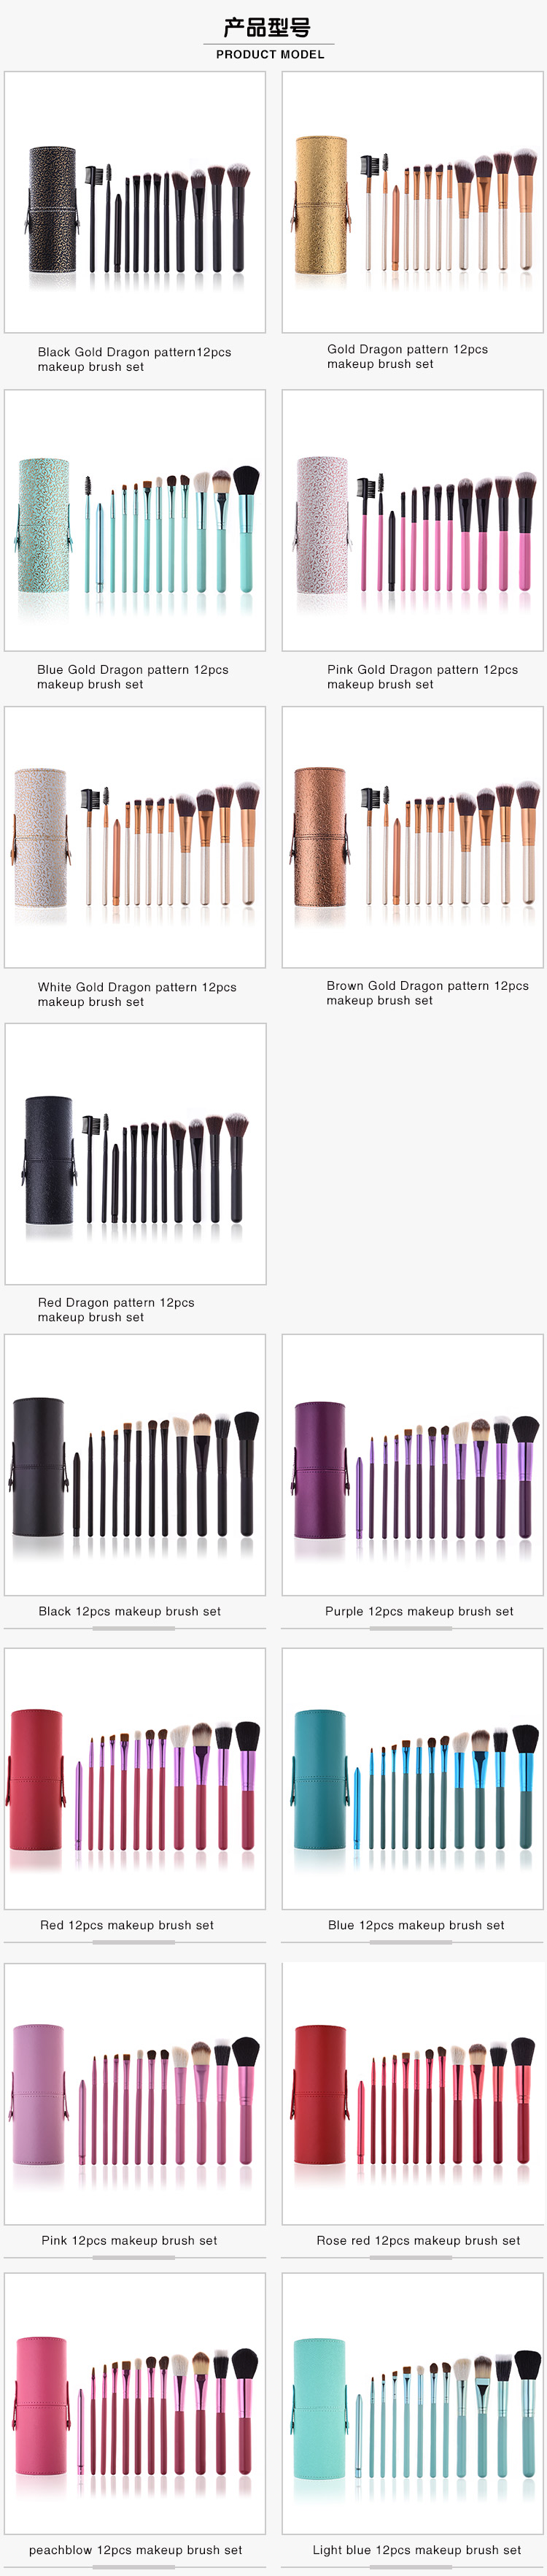 Wholesale 12pcs Professional Private Label Custom Facial Foundation Powder Cosmetic Brush Kit Makeup Brush Set Tool With Holder